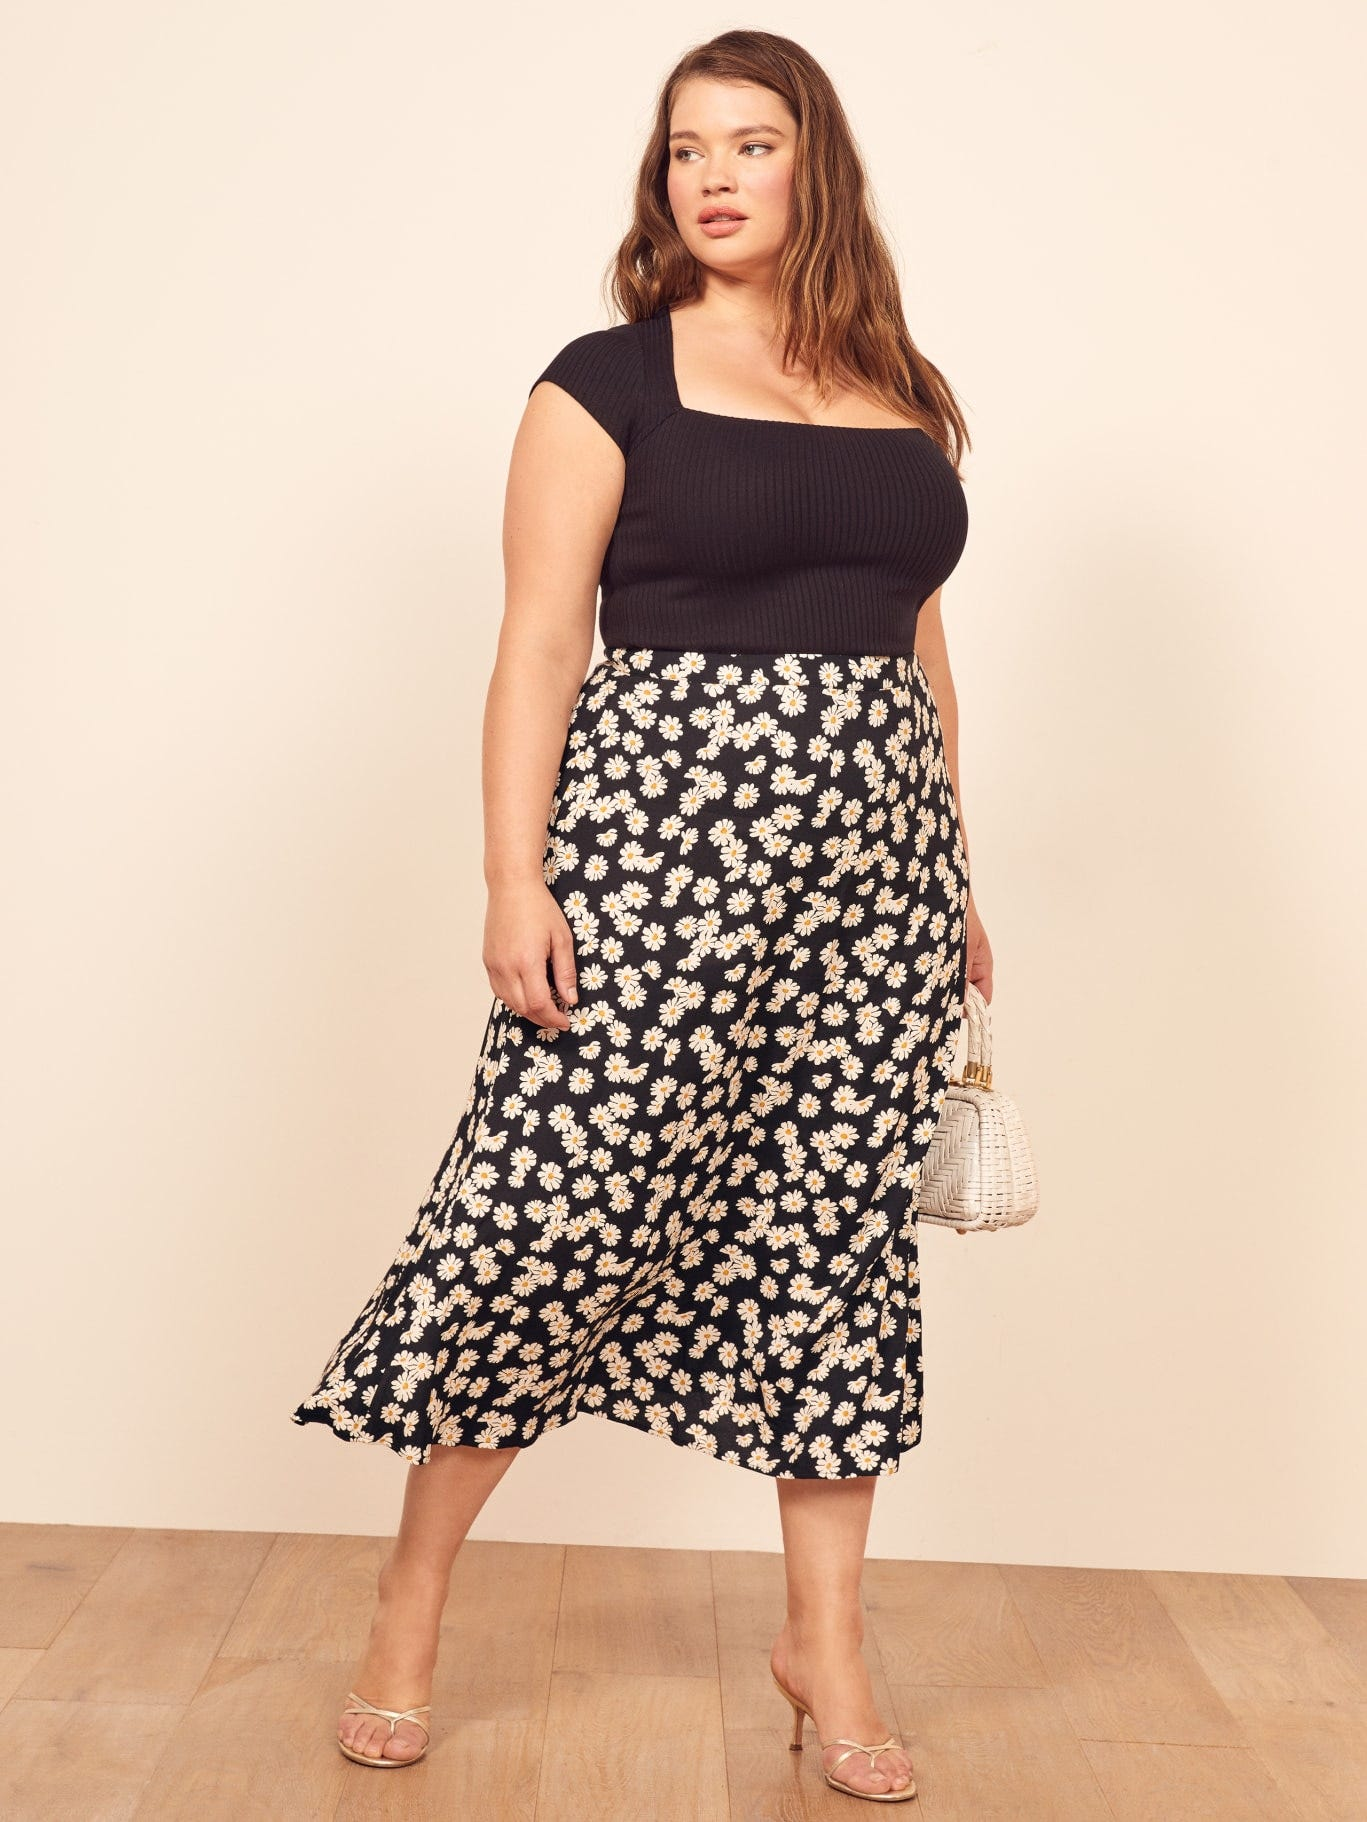 2874f57663f Reformation Plus Size Clothing Relaunch Spring 2019